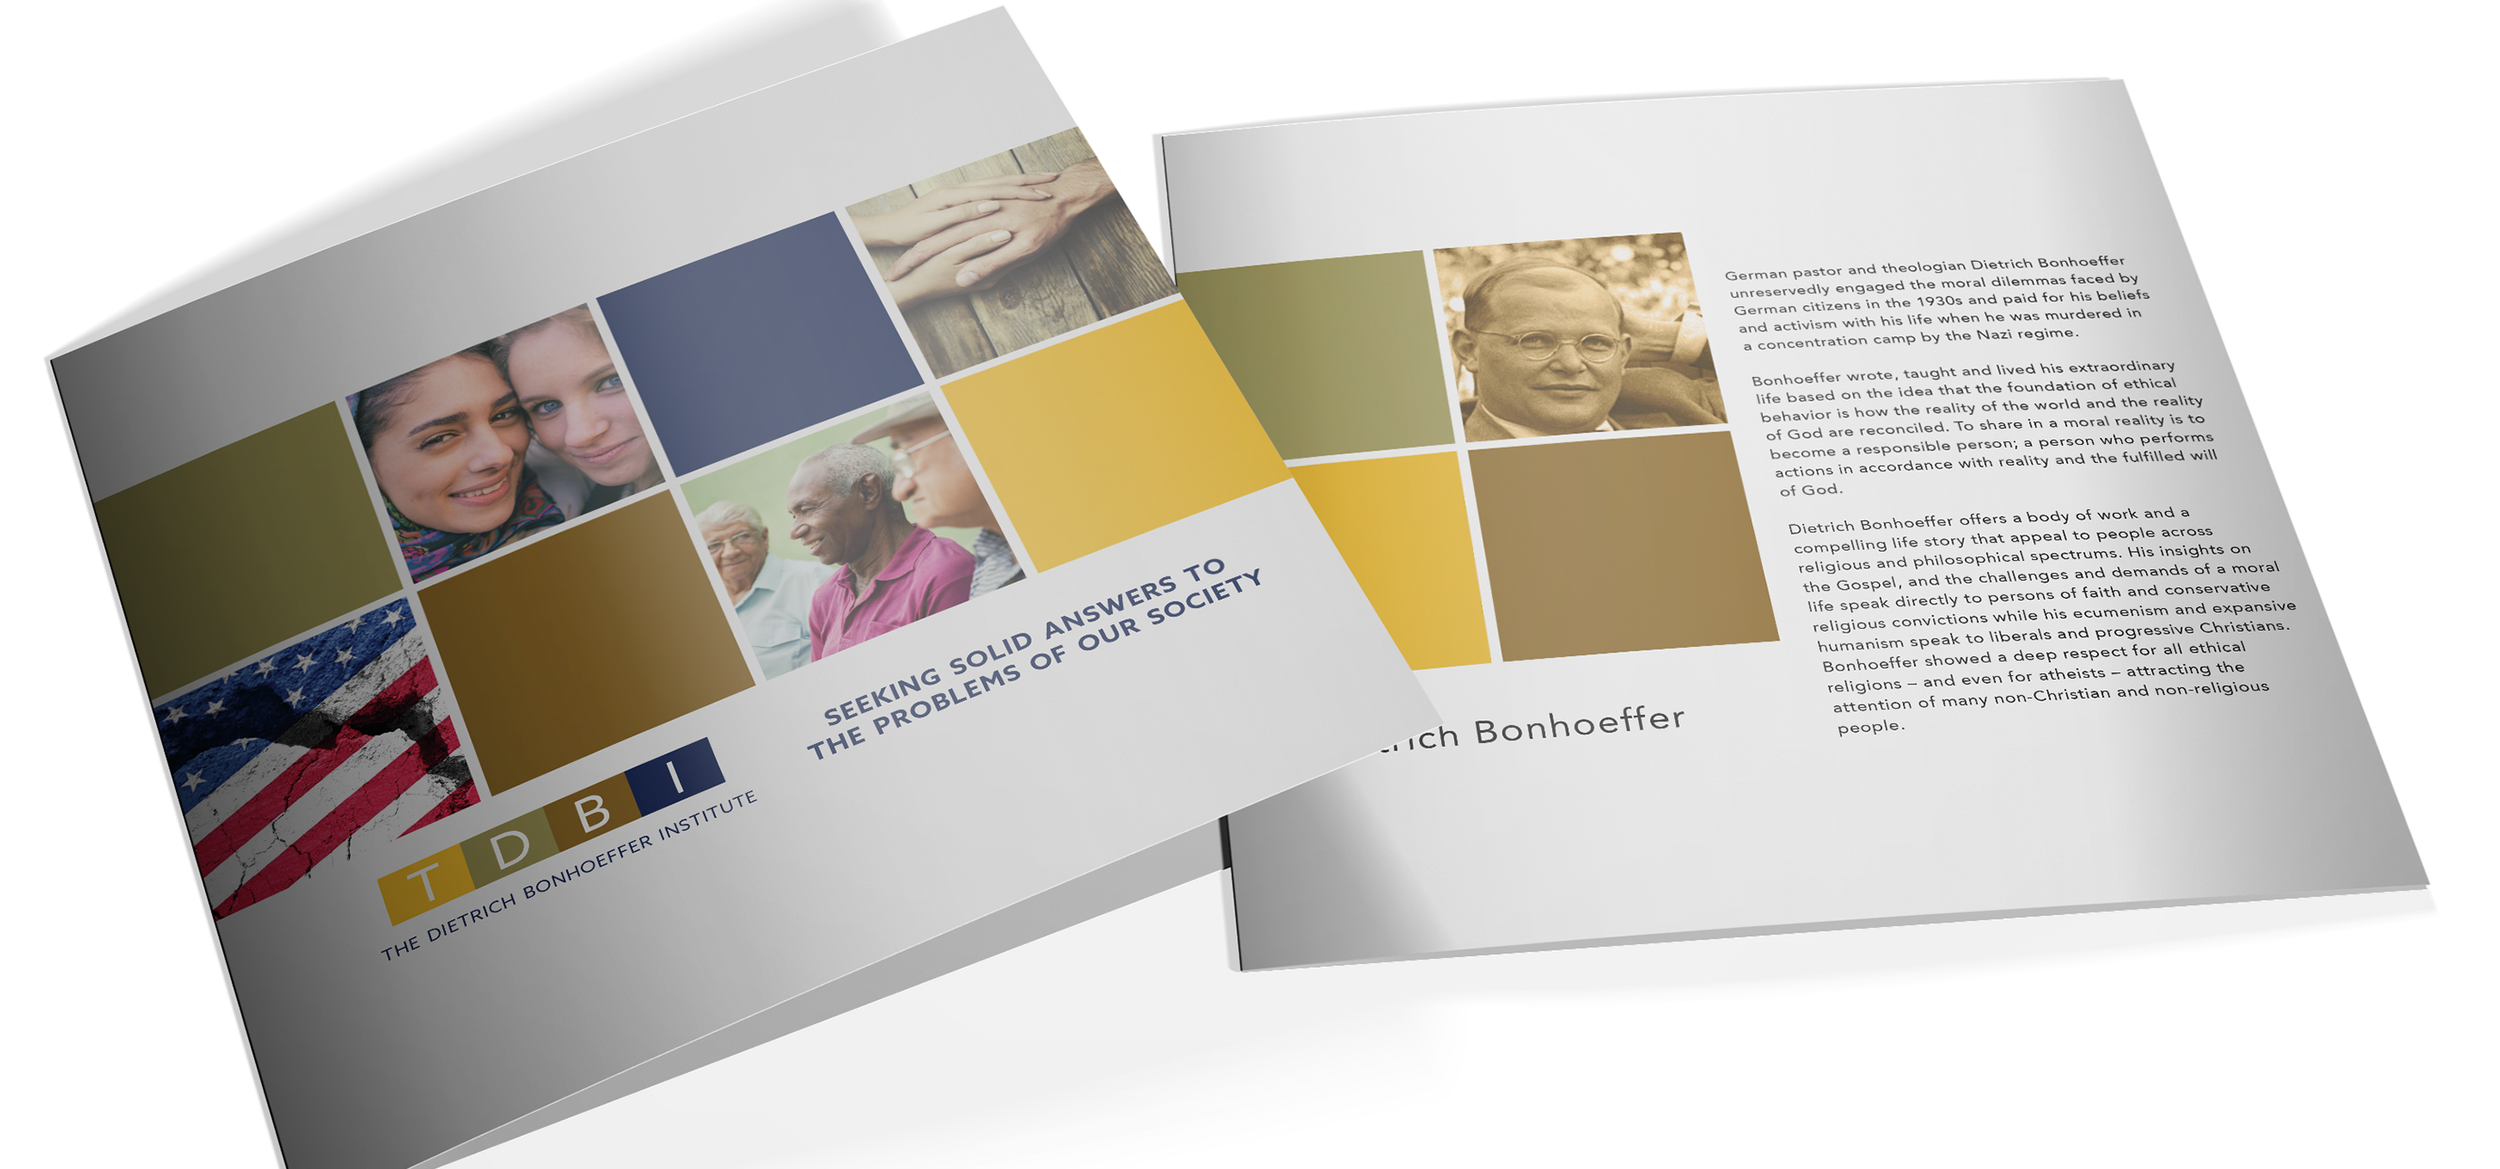 The Dietrich Bonhoeffer Institute: Capabilities Brochure